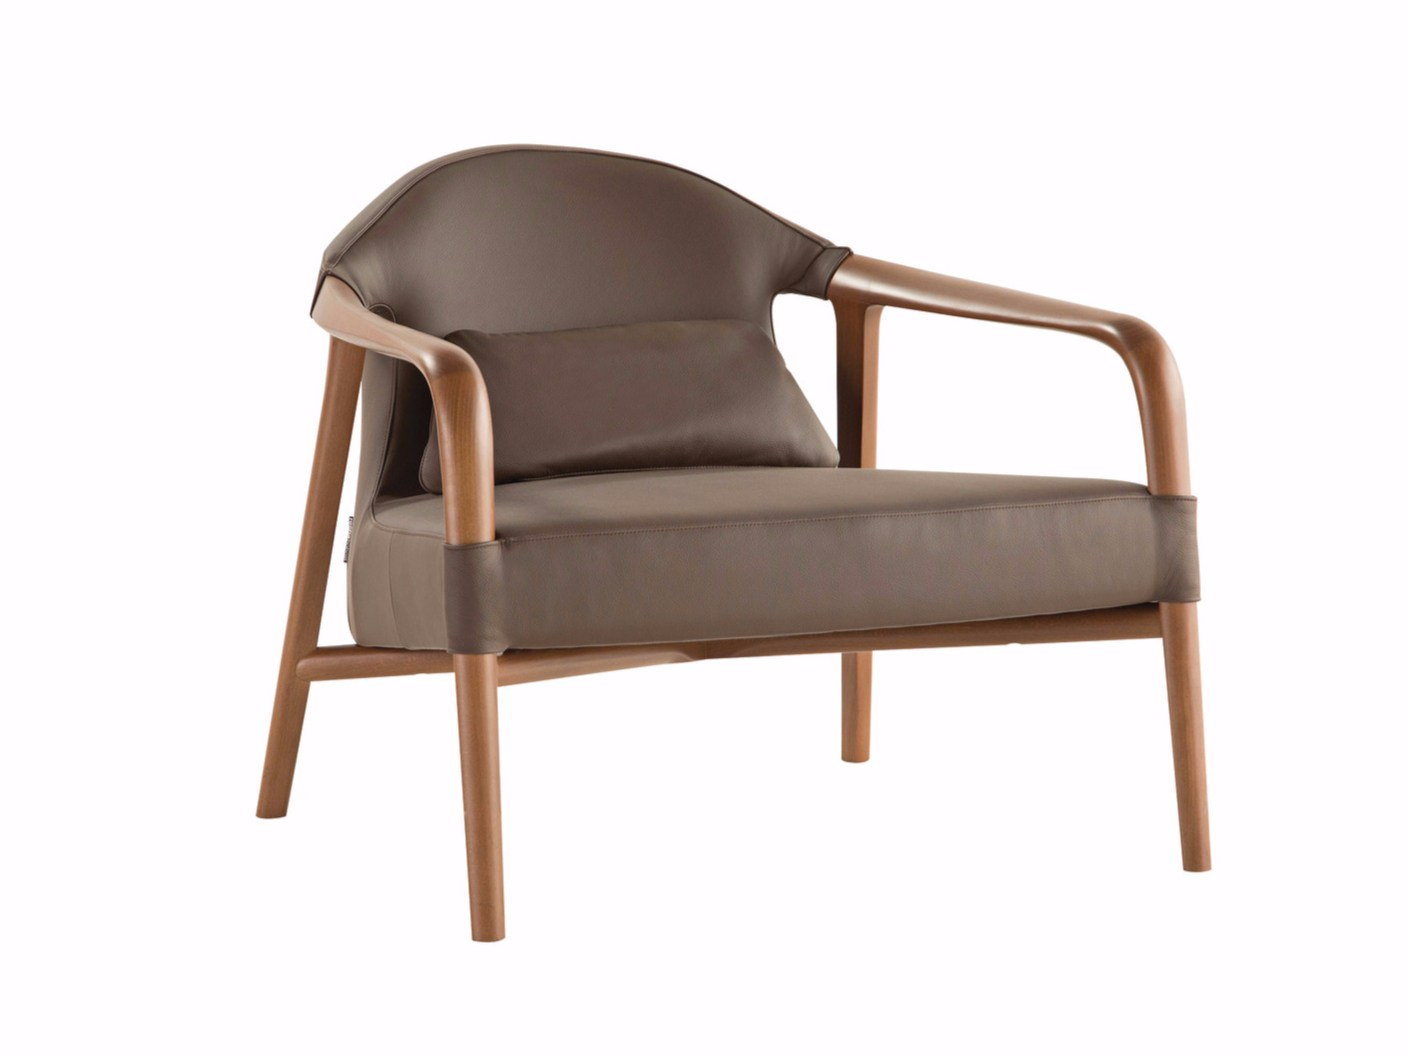 Awesome Great Fabulous Swivel Fabric Armchair With Armrests Elfe By Roche Bobois  Design Daniel Rode With Roche Bobois Poltrone With Roche Bobois Poltrone.